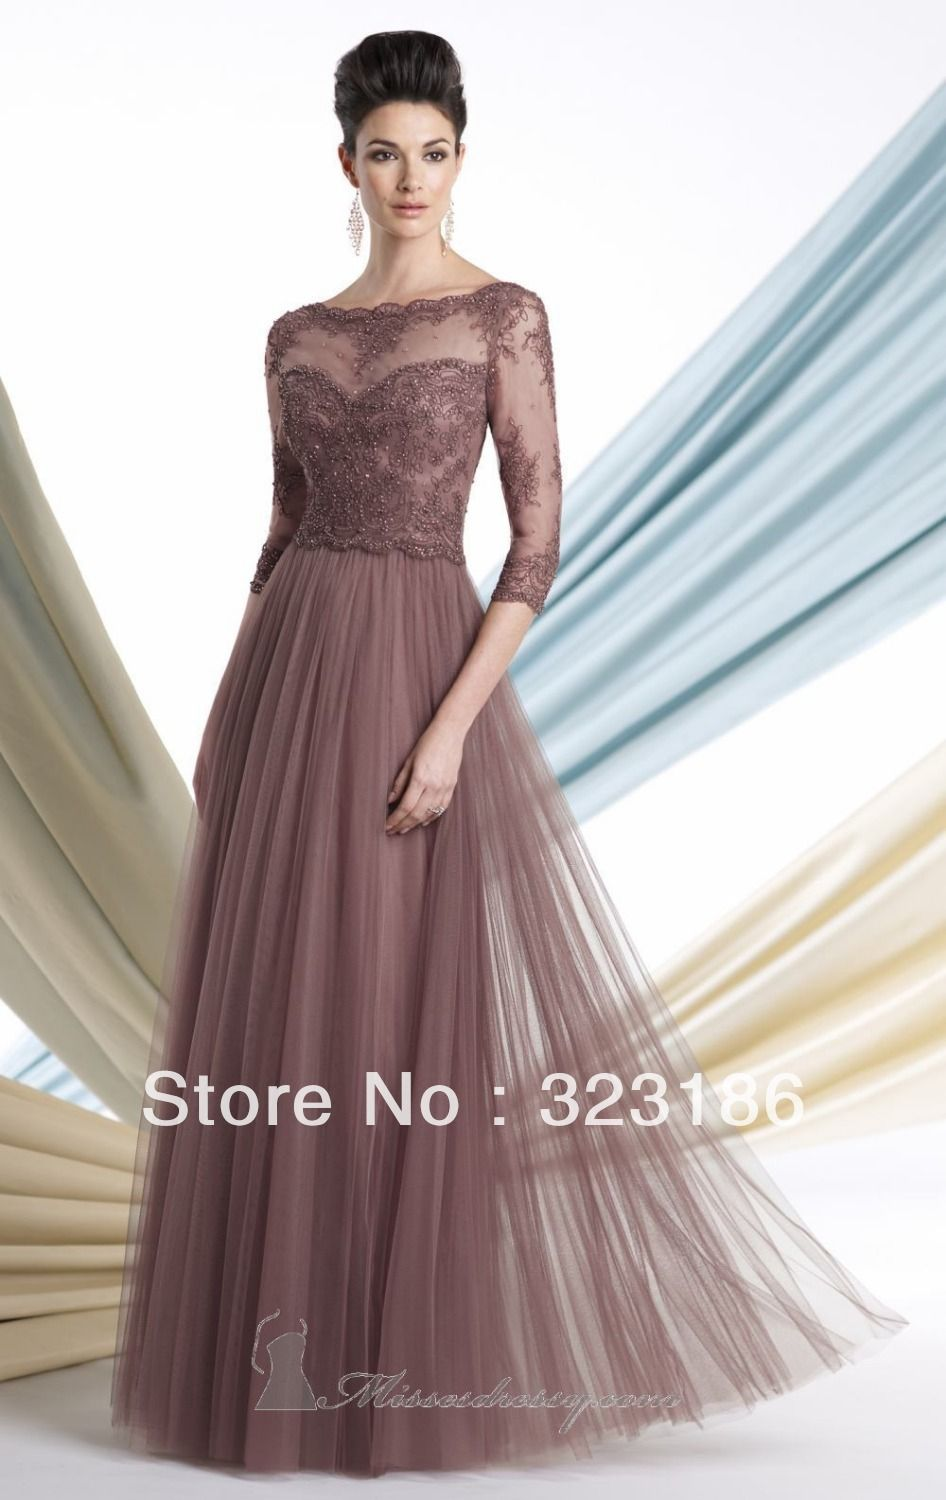 The dress for wedding - 2013 New Best Selling Wedding Guest Dress With